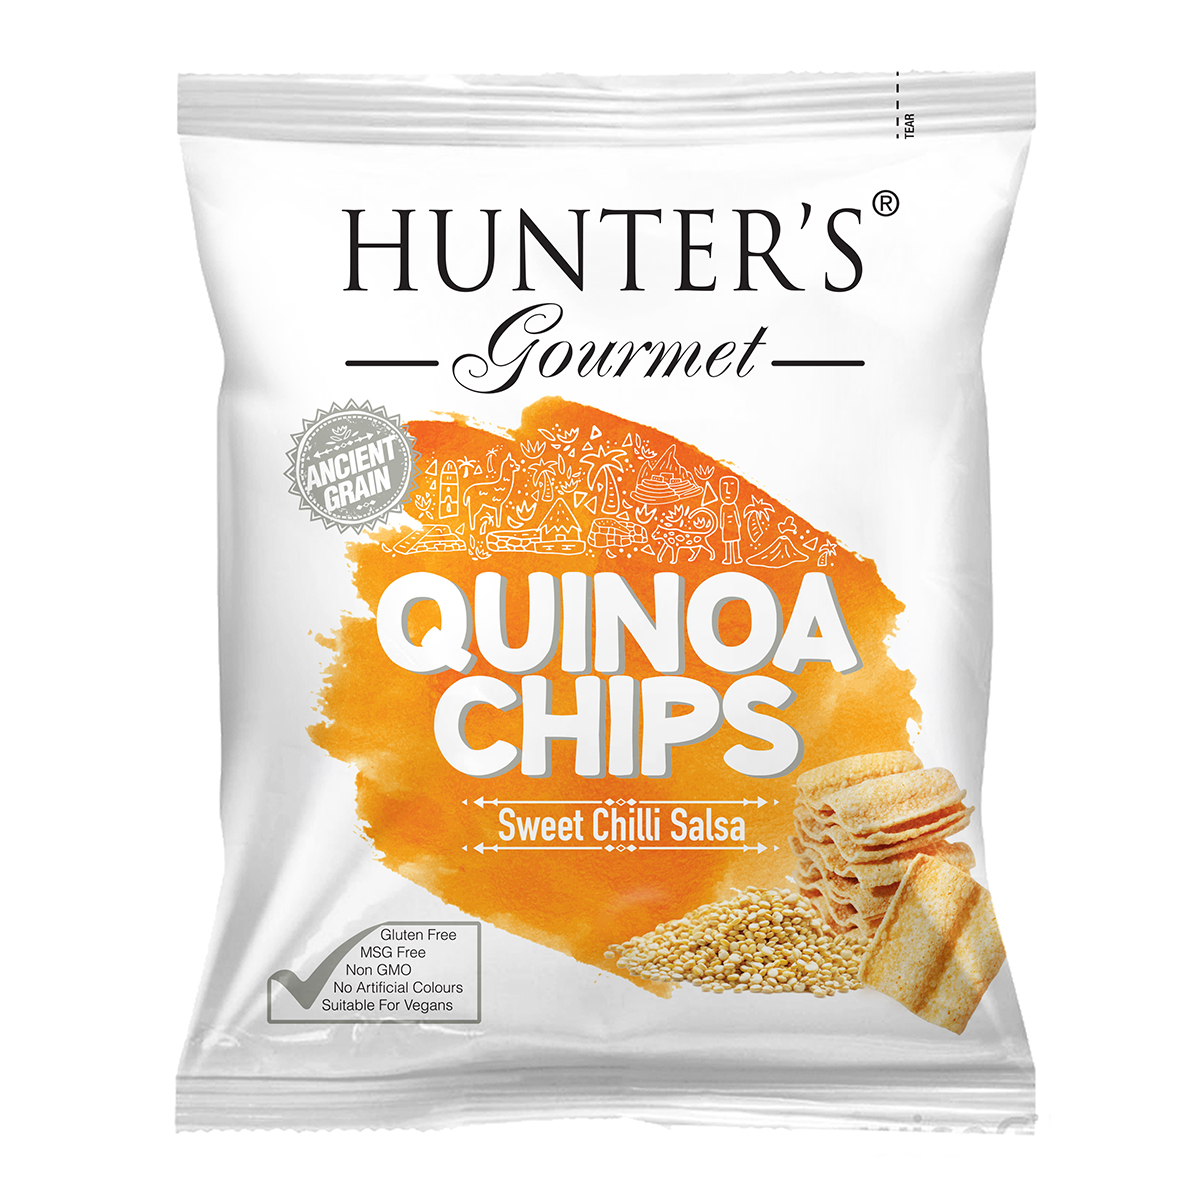 Hunter's Gourmet Quinoa Chips - Sweet Chilli Salsa (28gm)